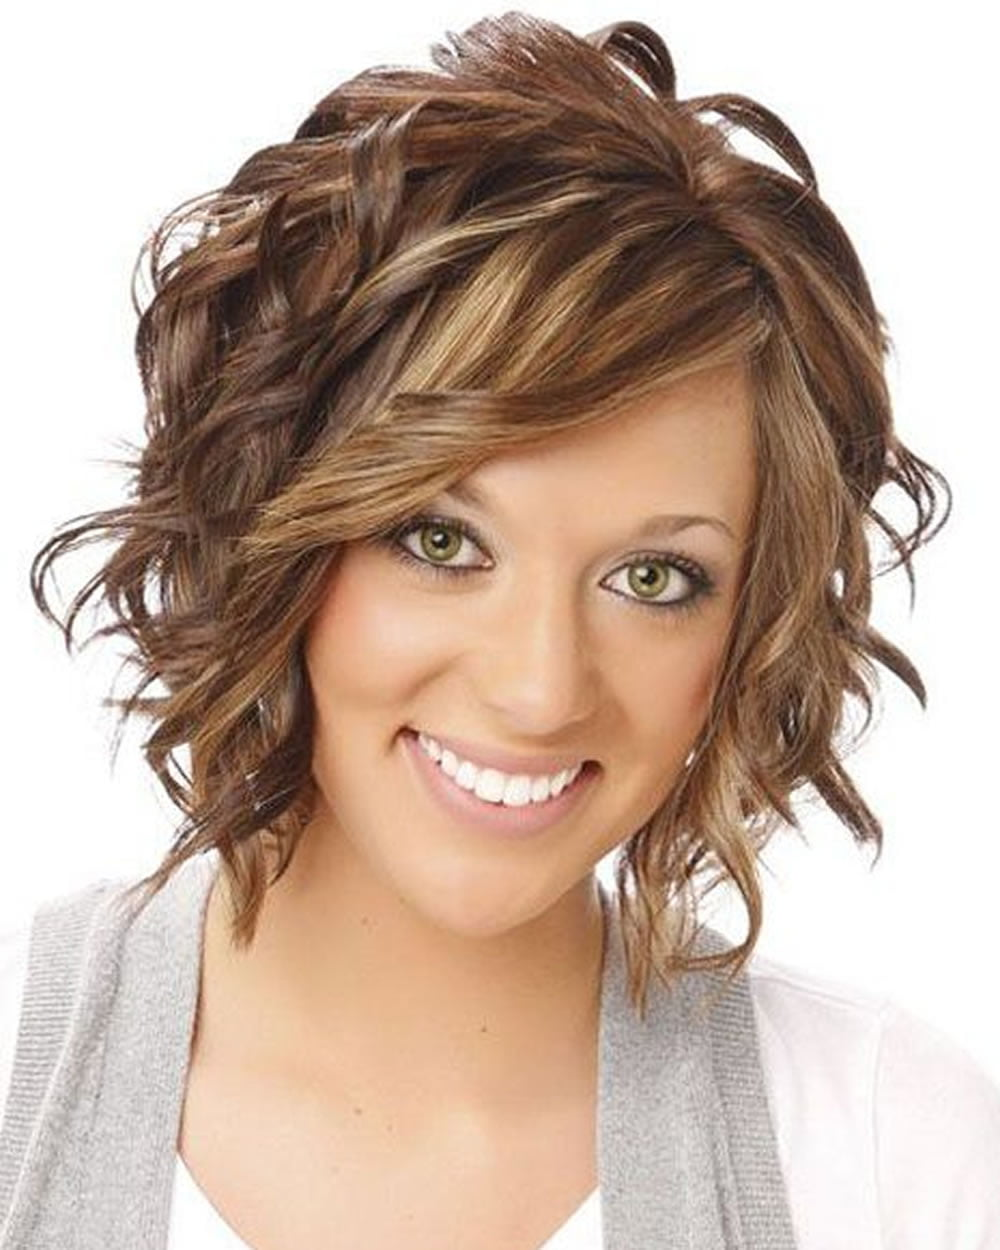 2018 Permed Hairstyles for Short Hair  Best 32 Curly Short Haircut  HAIRSTYLES